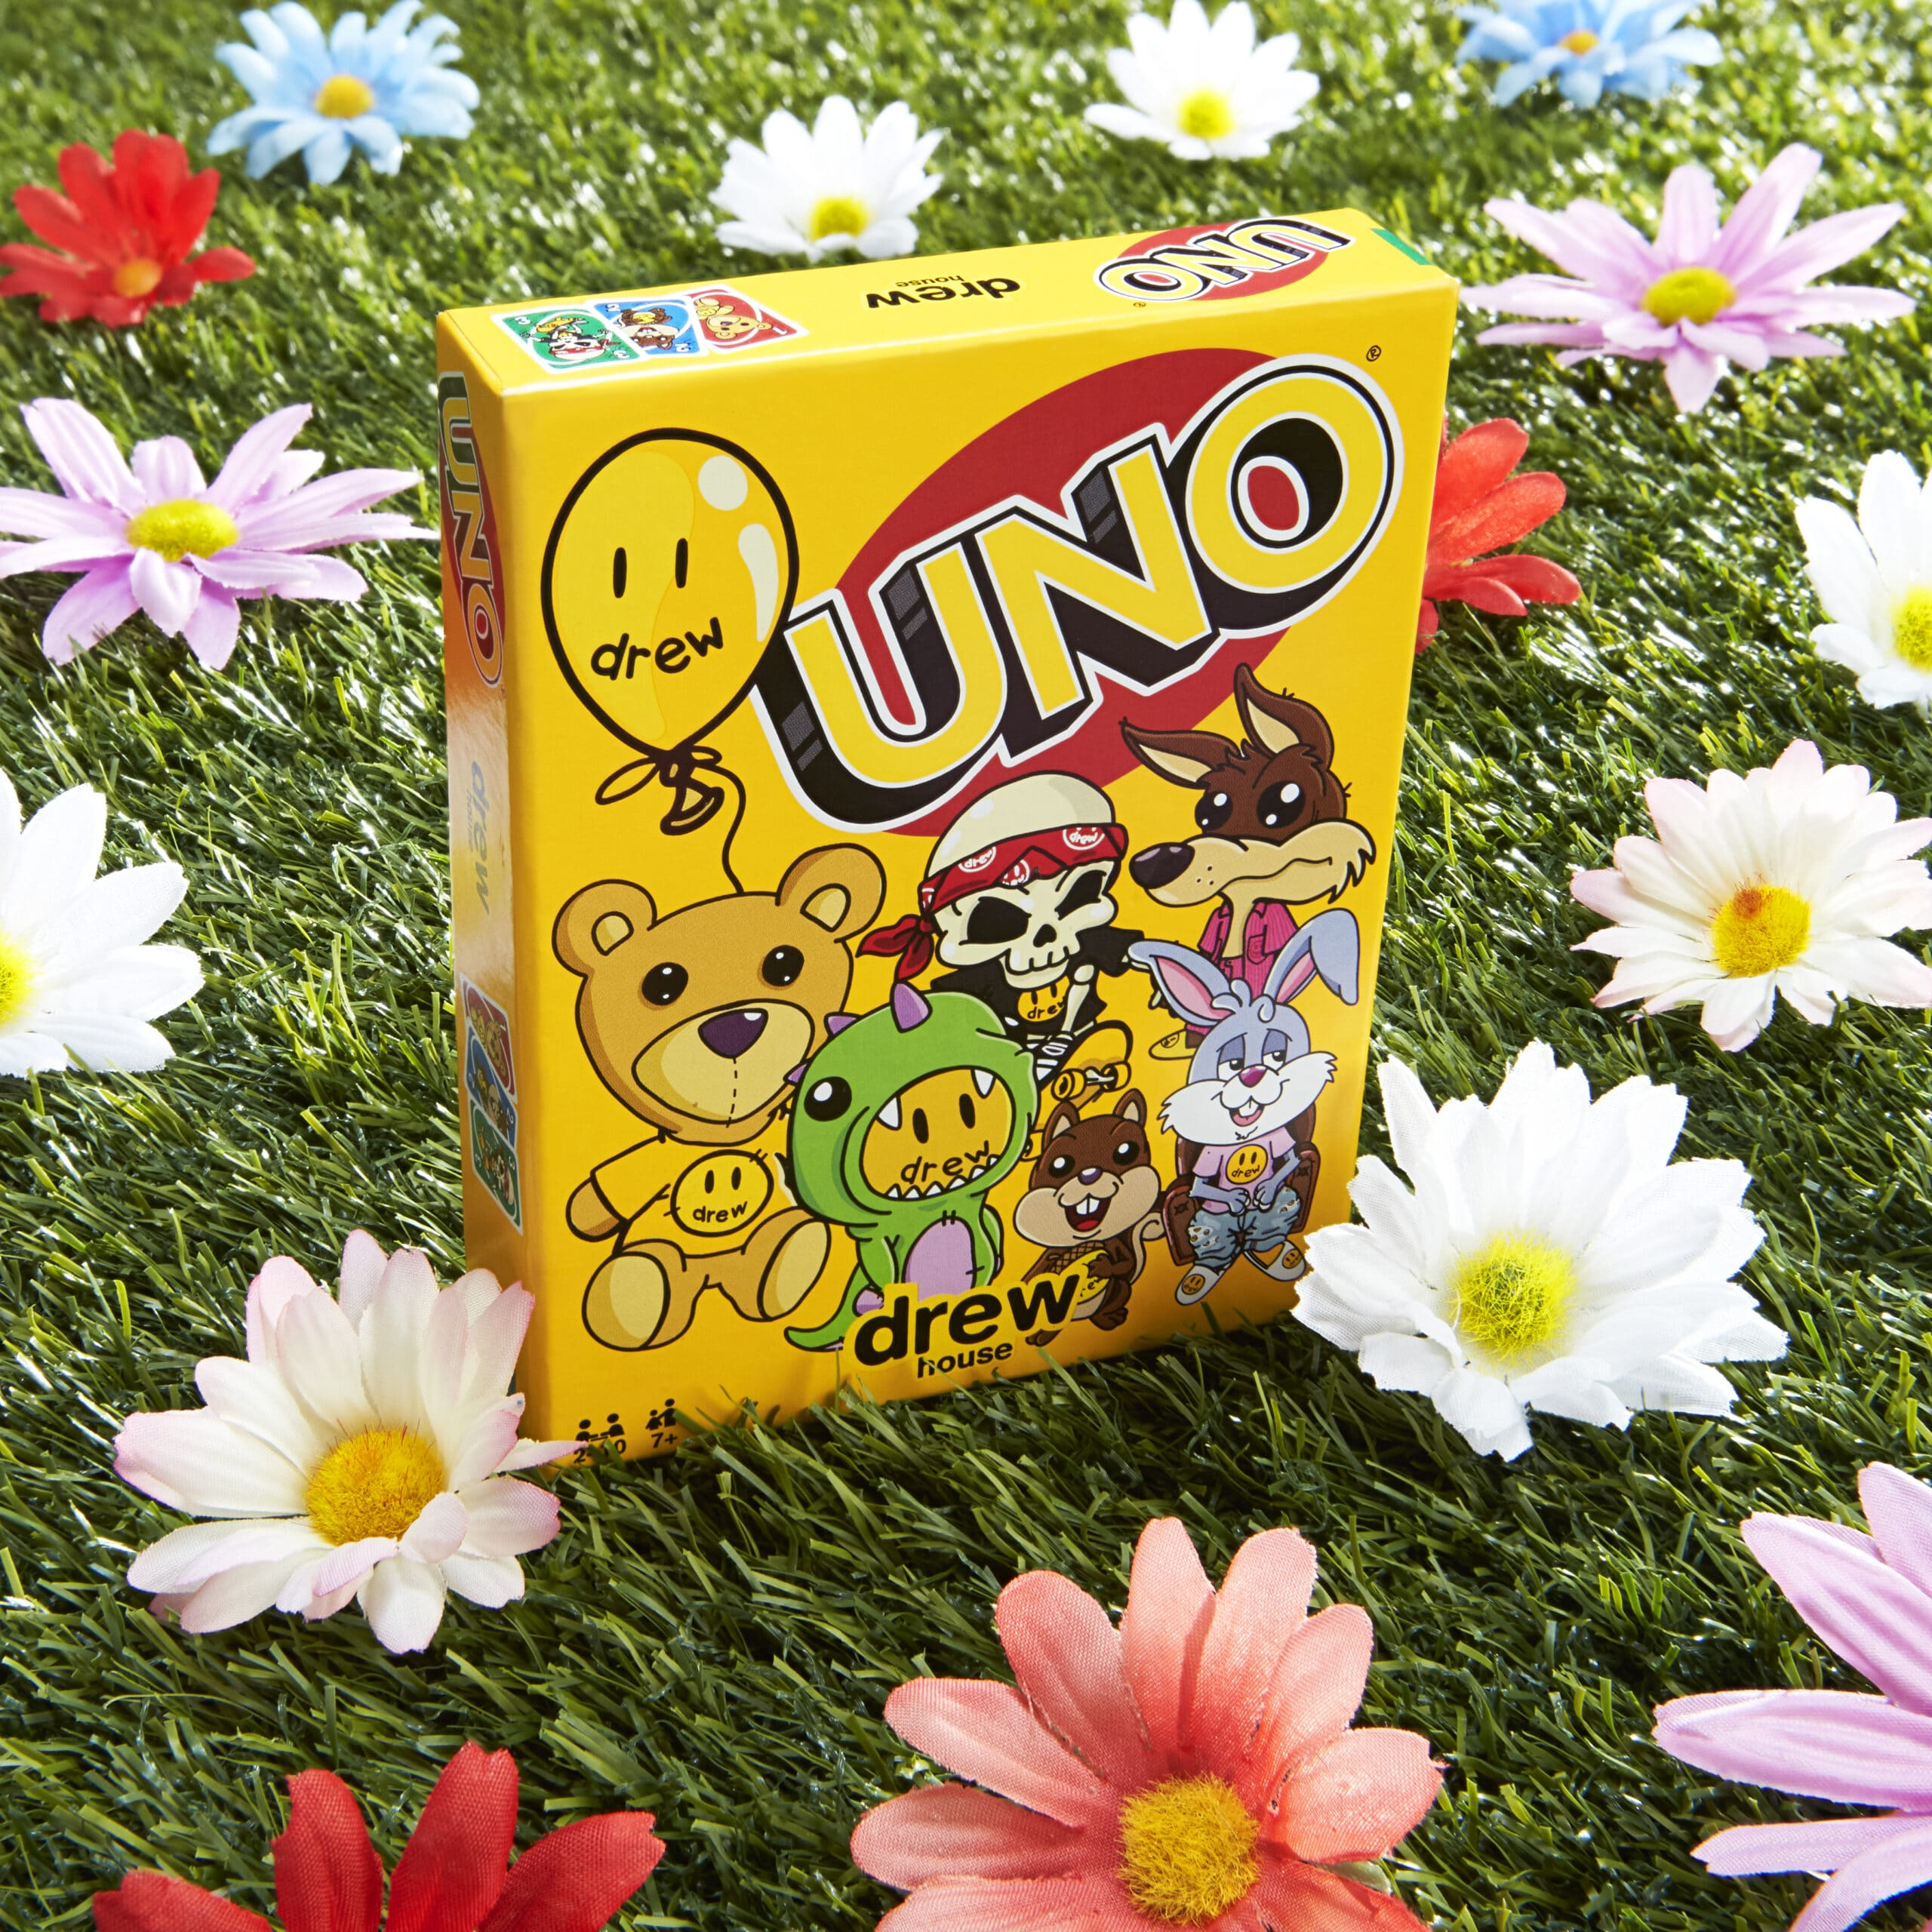 UNO teams up with Justin Bieber's drew house for a limited-edition card deck 16